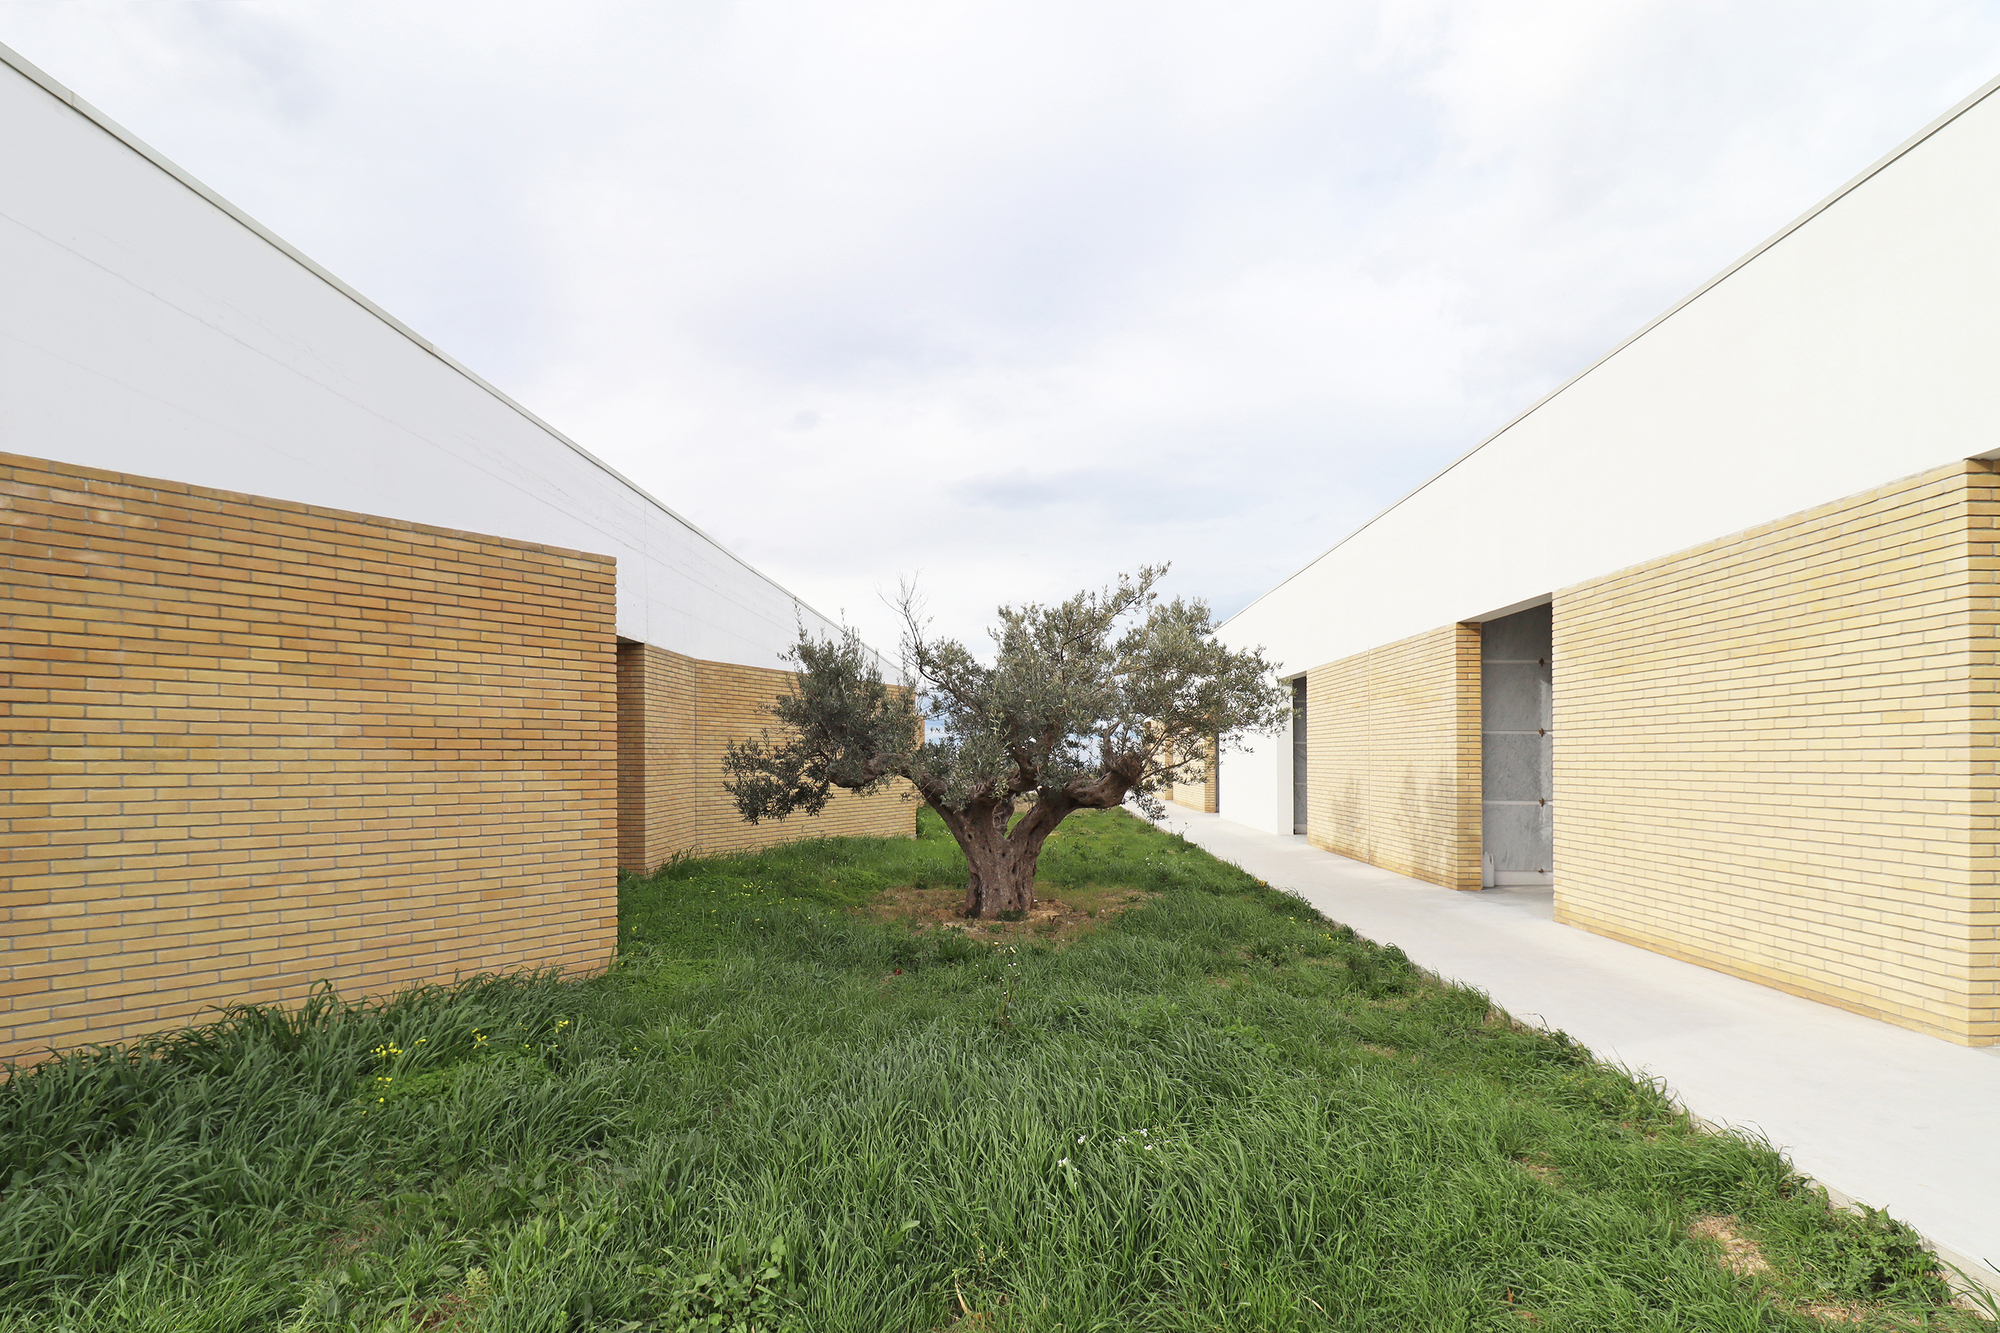 Landscape of Remembrance / arcari cimini architettura